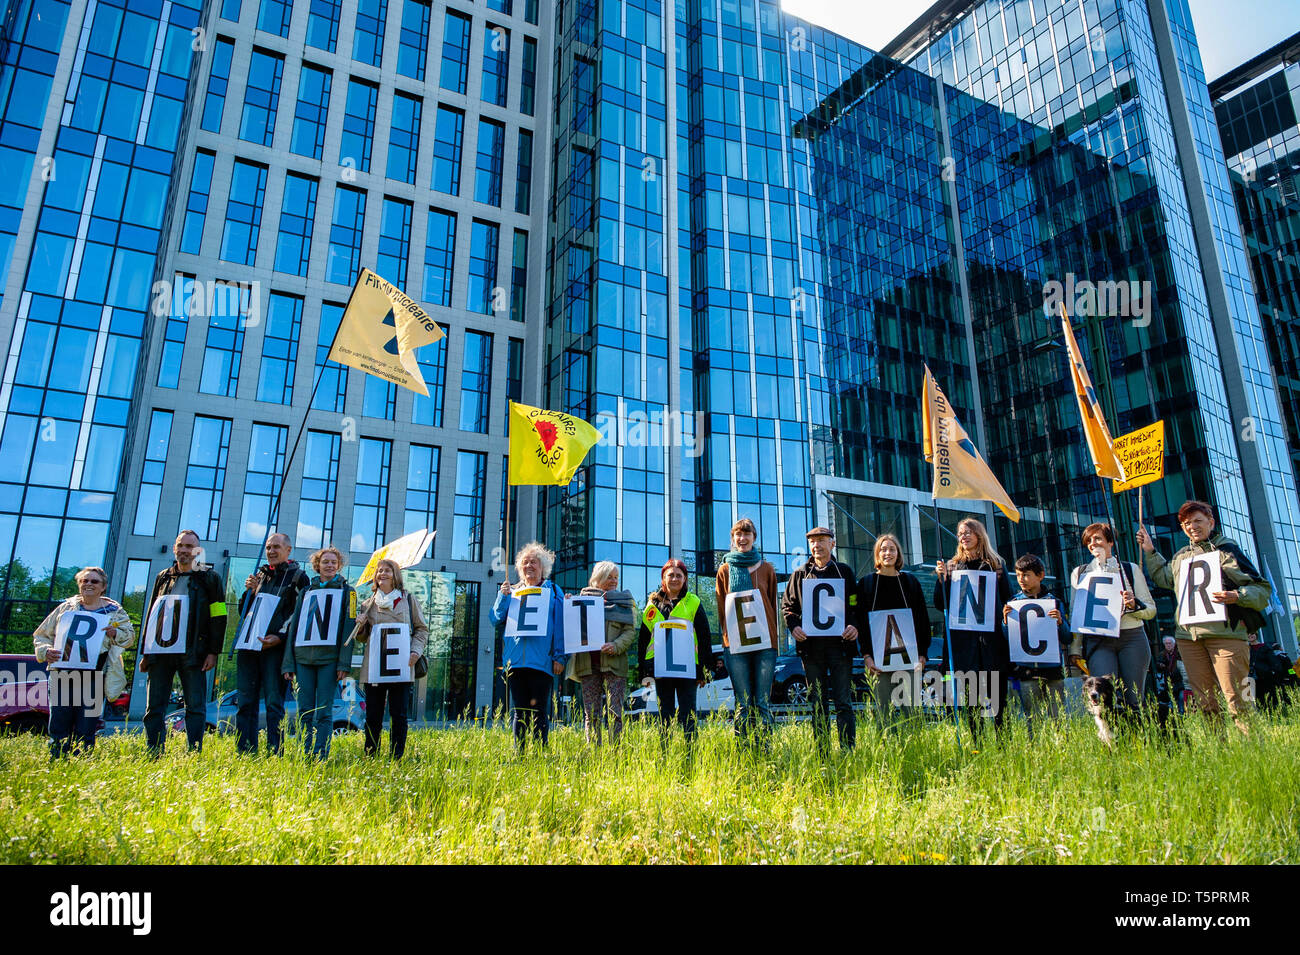 """April 26, 2019 - Brussels, North Brabant, Belgium - A group of activists are seen holding placards with the word cancer in front of the Engie HQ during the protest..On the day that commemorates the 33rd anniversary of the Chernobyl nuclear disaster, a protest was organized by the """"Fin du nucléaire"""" and Réveil Anti-Nucléaire"""" associations, as well as director Bouli Lanners. They want the five most dangerous Belgian reactors to be shut down. (Credit Image: © Ana Fernandez/SOPA Images via ZUMA Wire) - Stock Image"""